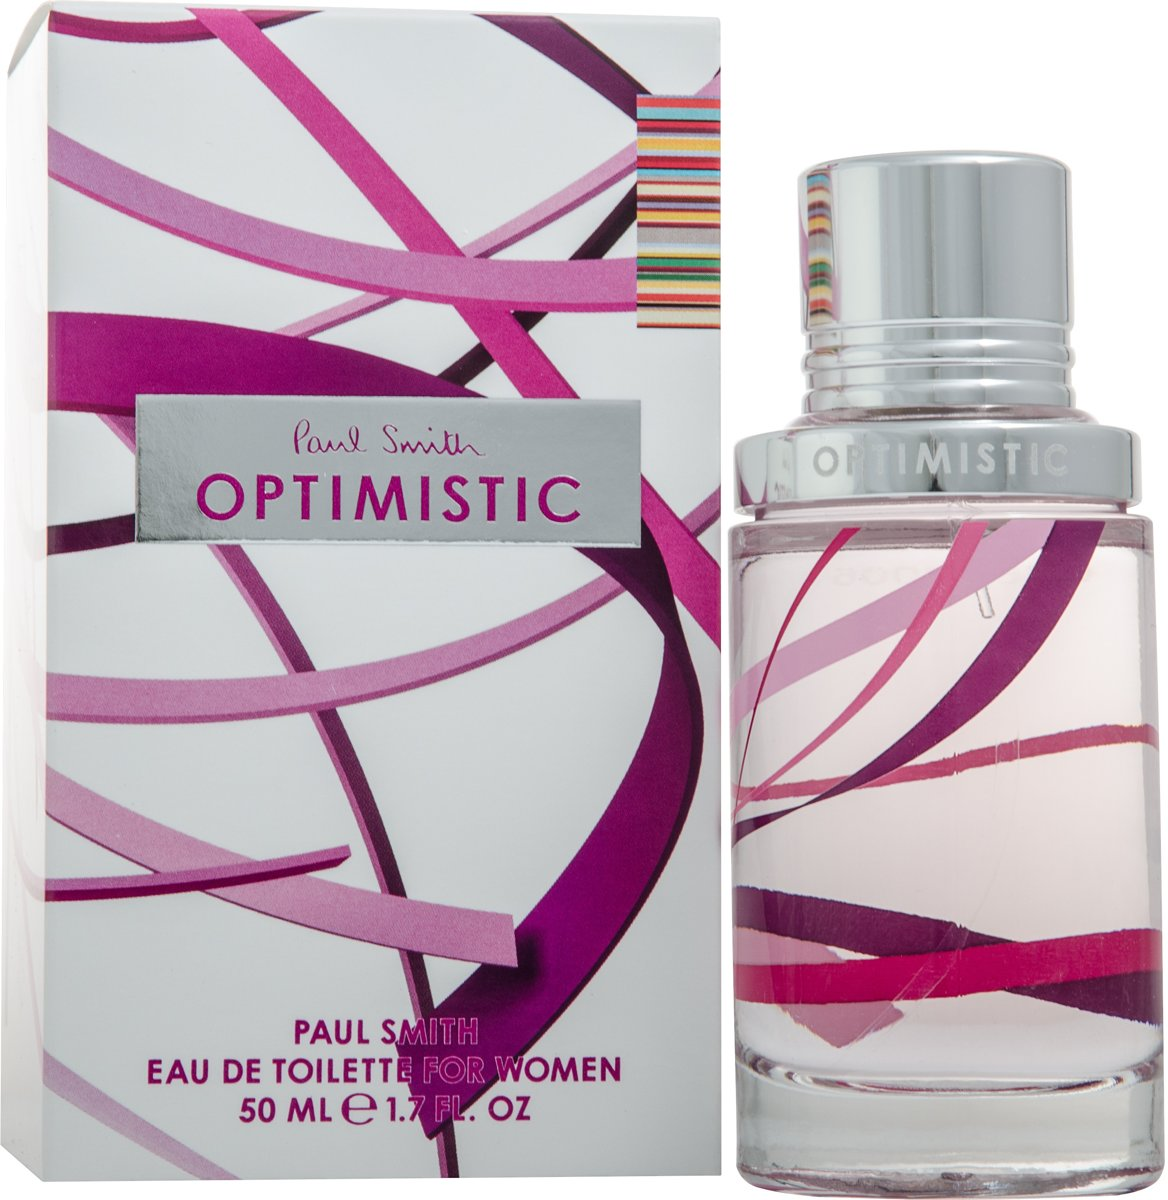 Paul Smith Optimistic for Woman - 50 ml - Eau de toilette